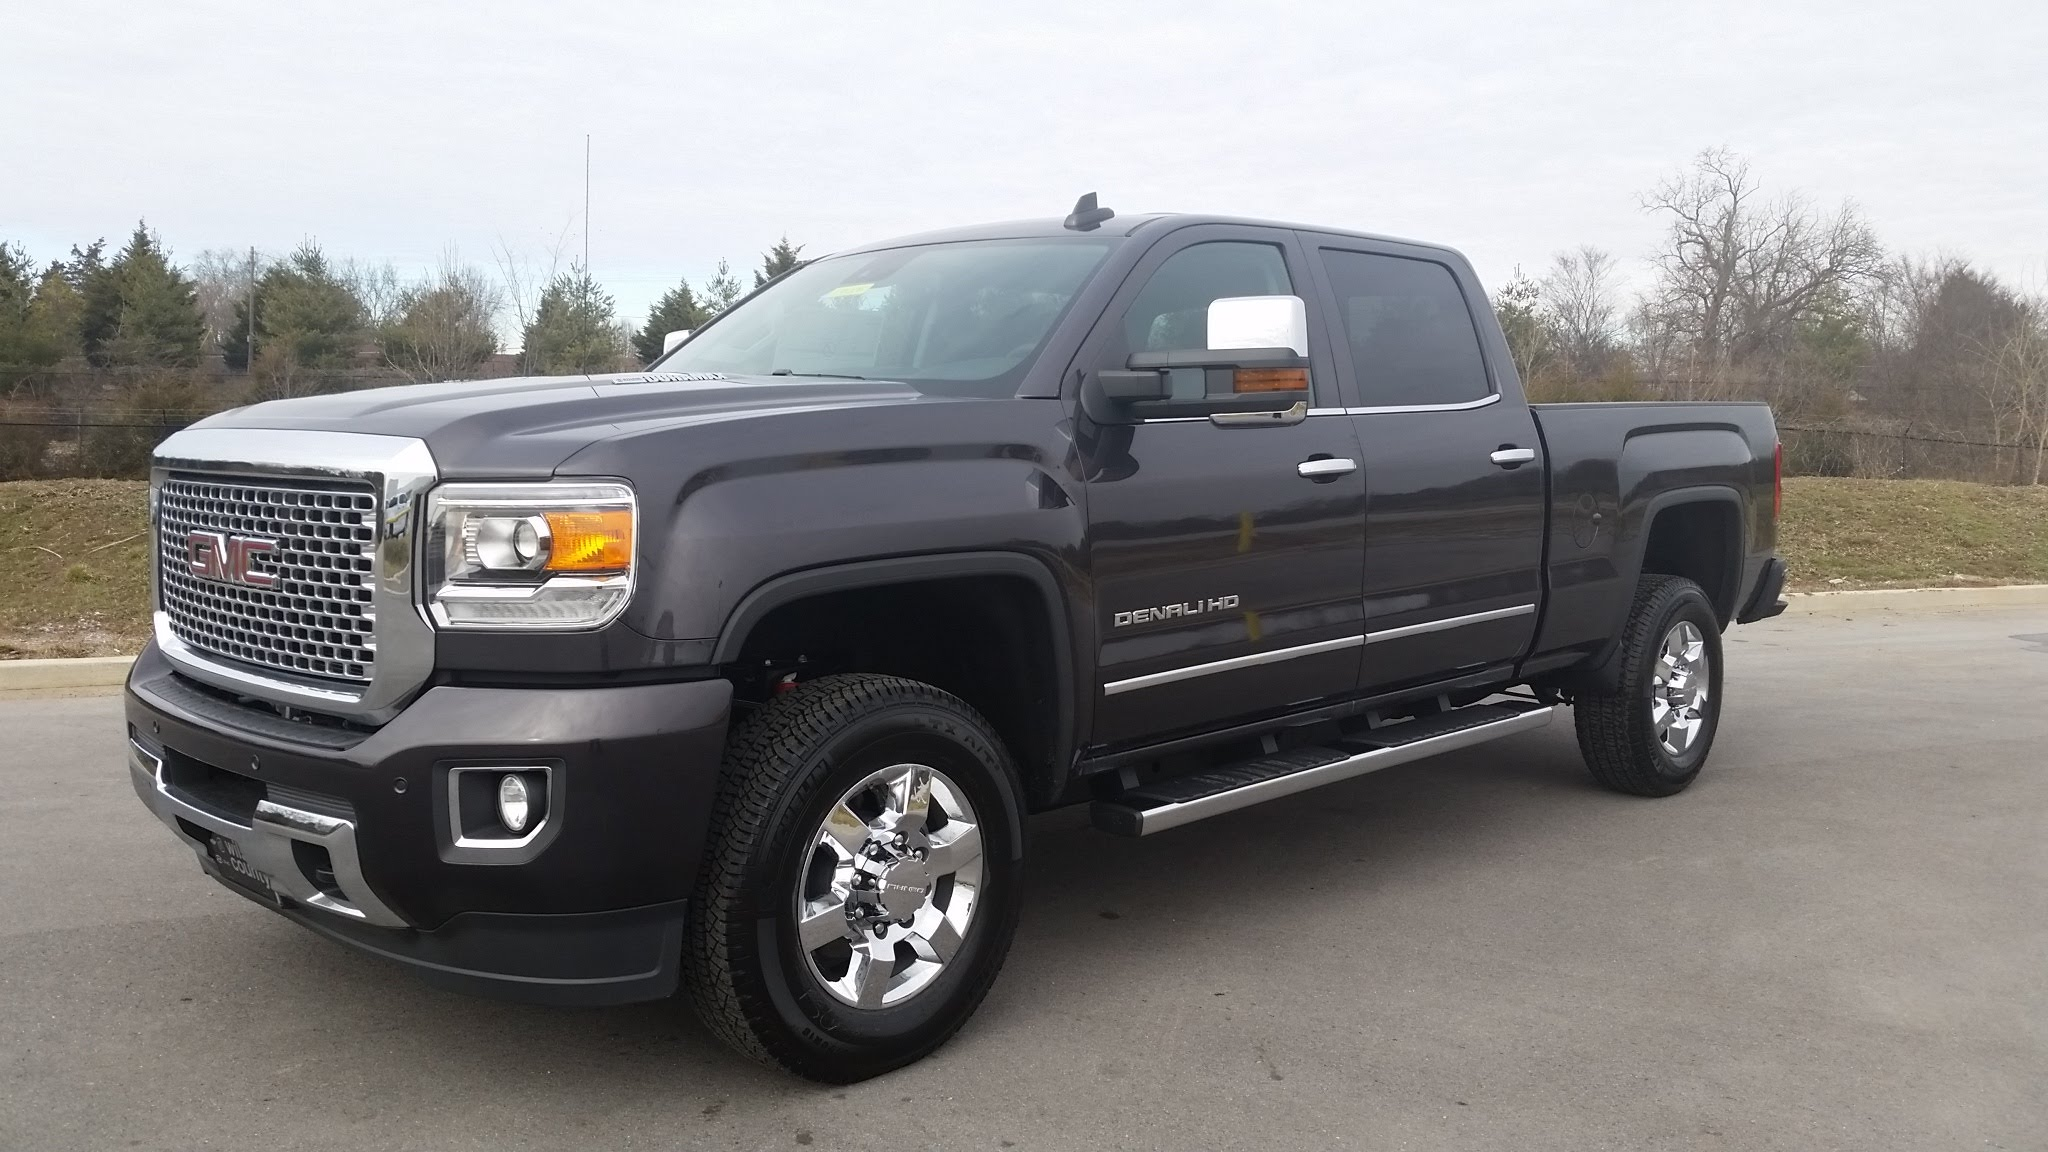 2015 GMC Sierra 3500hd #9